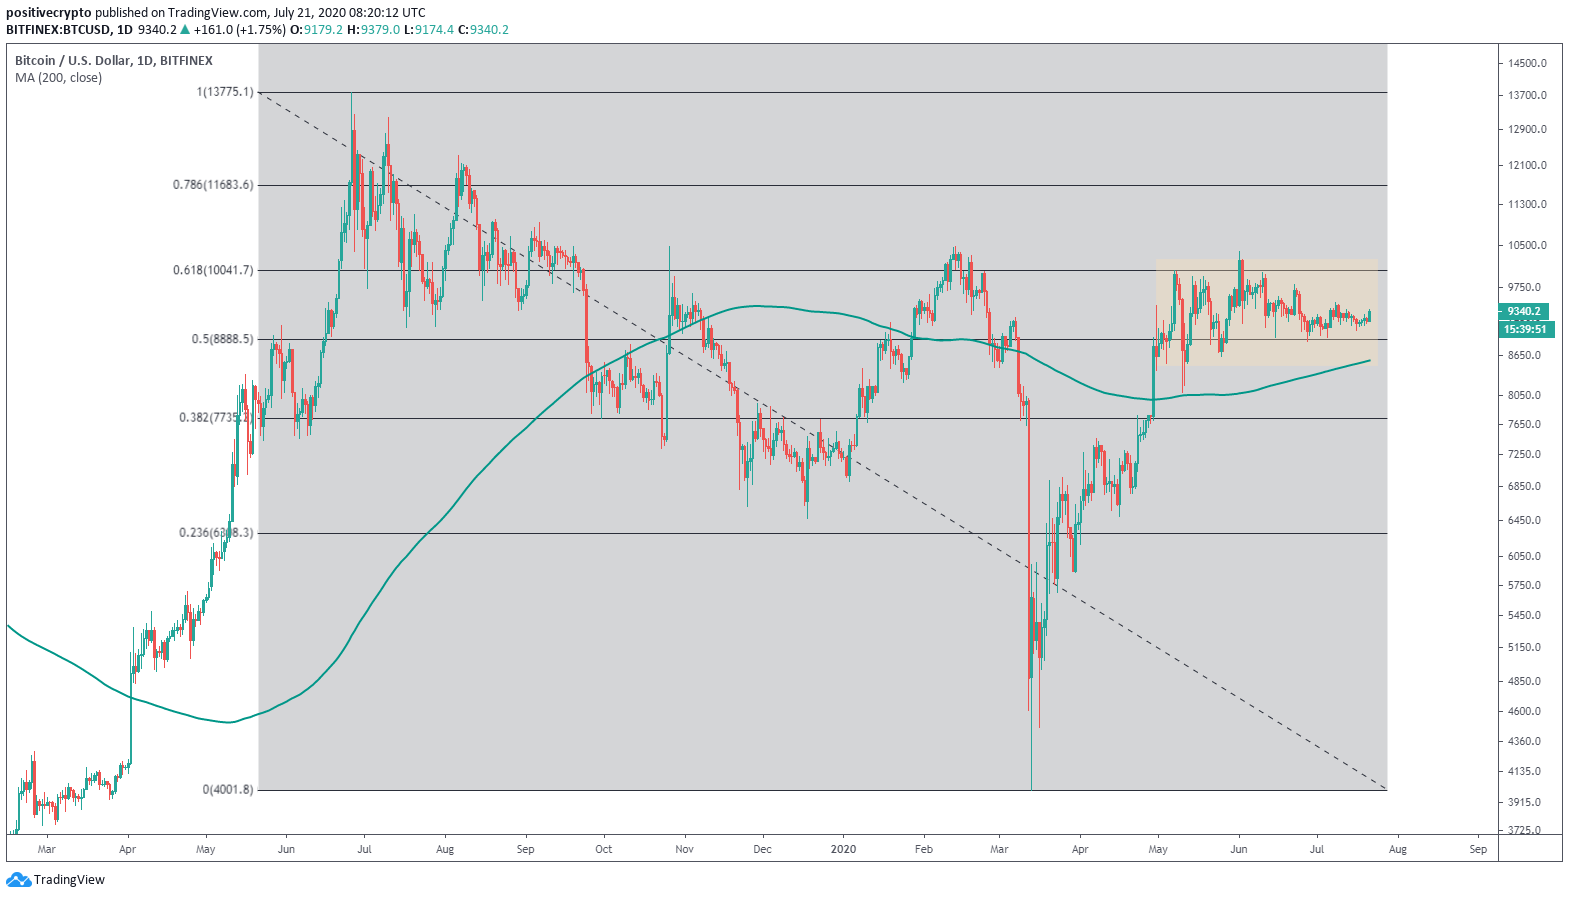 The range of Bitcoin since May was above the 200-day moving average